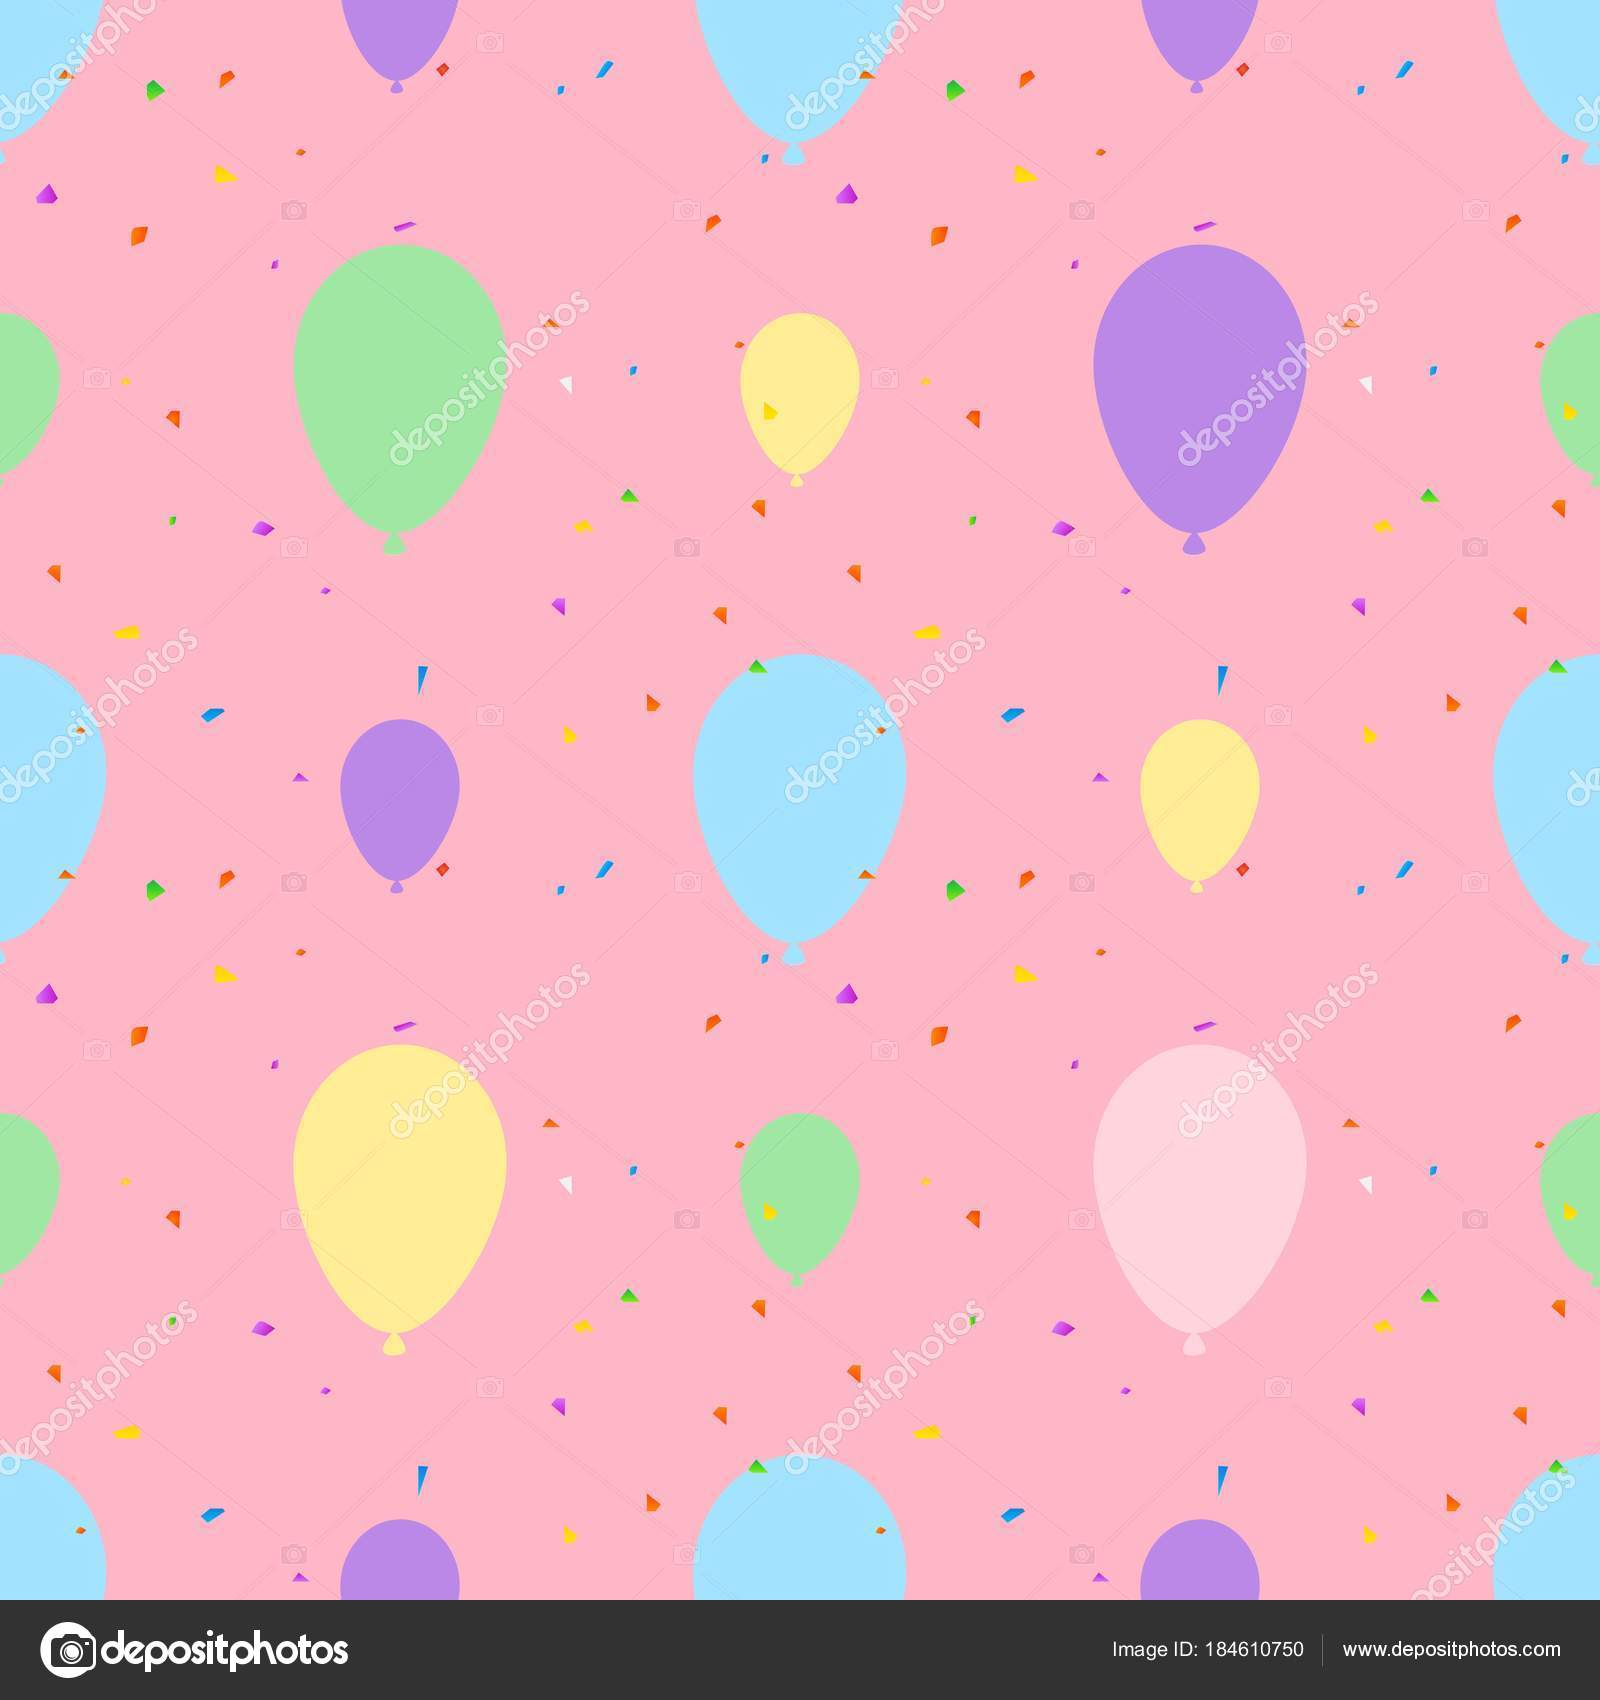 Balloon Seamless Pattern Vector Illustration On Pink Background Pastel Balloons Design For Textile Wallpaper Fabric By Werayuth